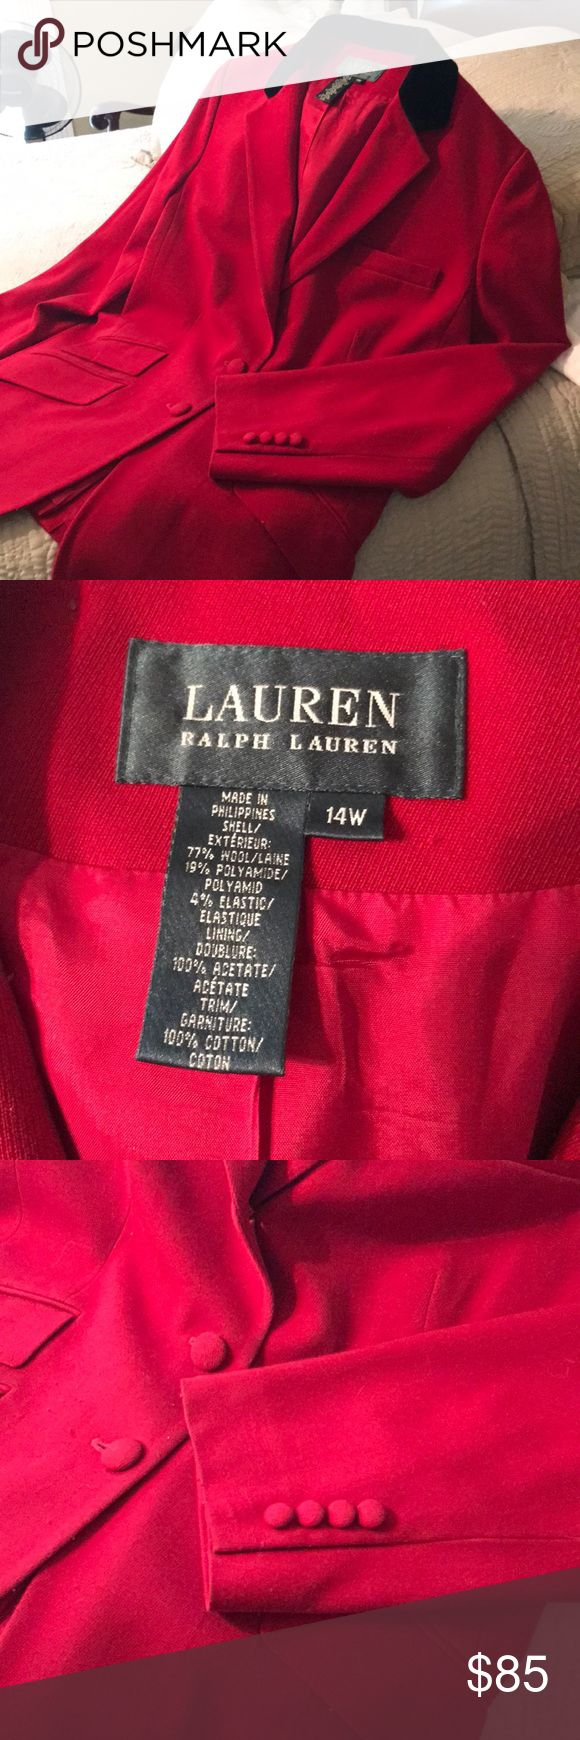 Ralph Lauren Riding Jacket RL beautiful Red with black velvet collar, covered buttons, Breast pocket and  Three side pockets. Just in time for Christmas! In great condition, minimal piling but you can't see when on. Needs dry cleaning, it's been hanging for a year. Only worn during the holidays. Fully Linen- super sharp with black skirt or slacks. A true classic RL riding Blazer.  Make us an offer! Lauren Ralph Lauren Jackets & Coats Blazers